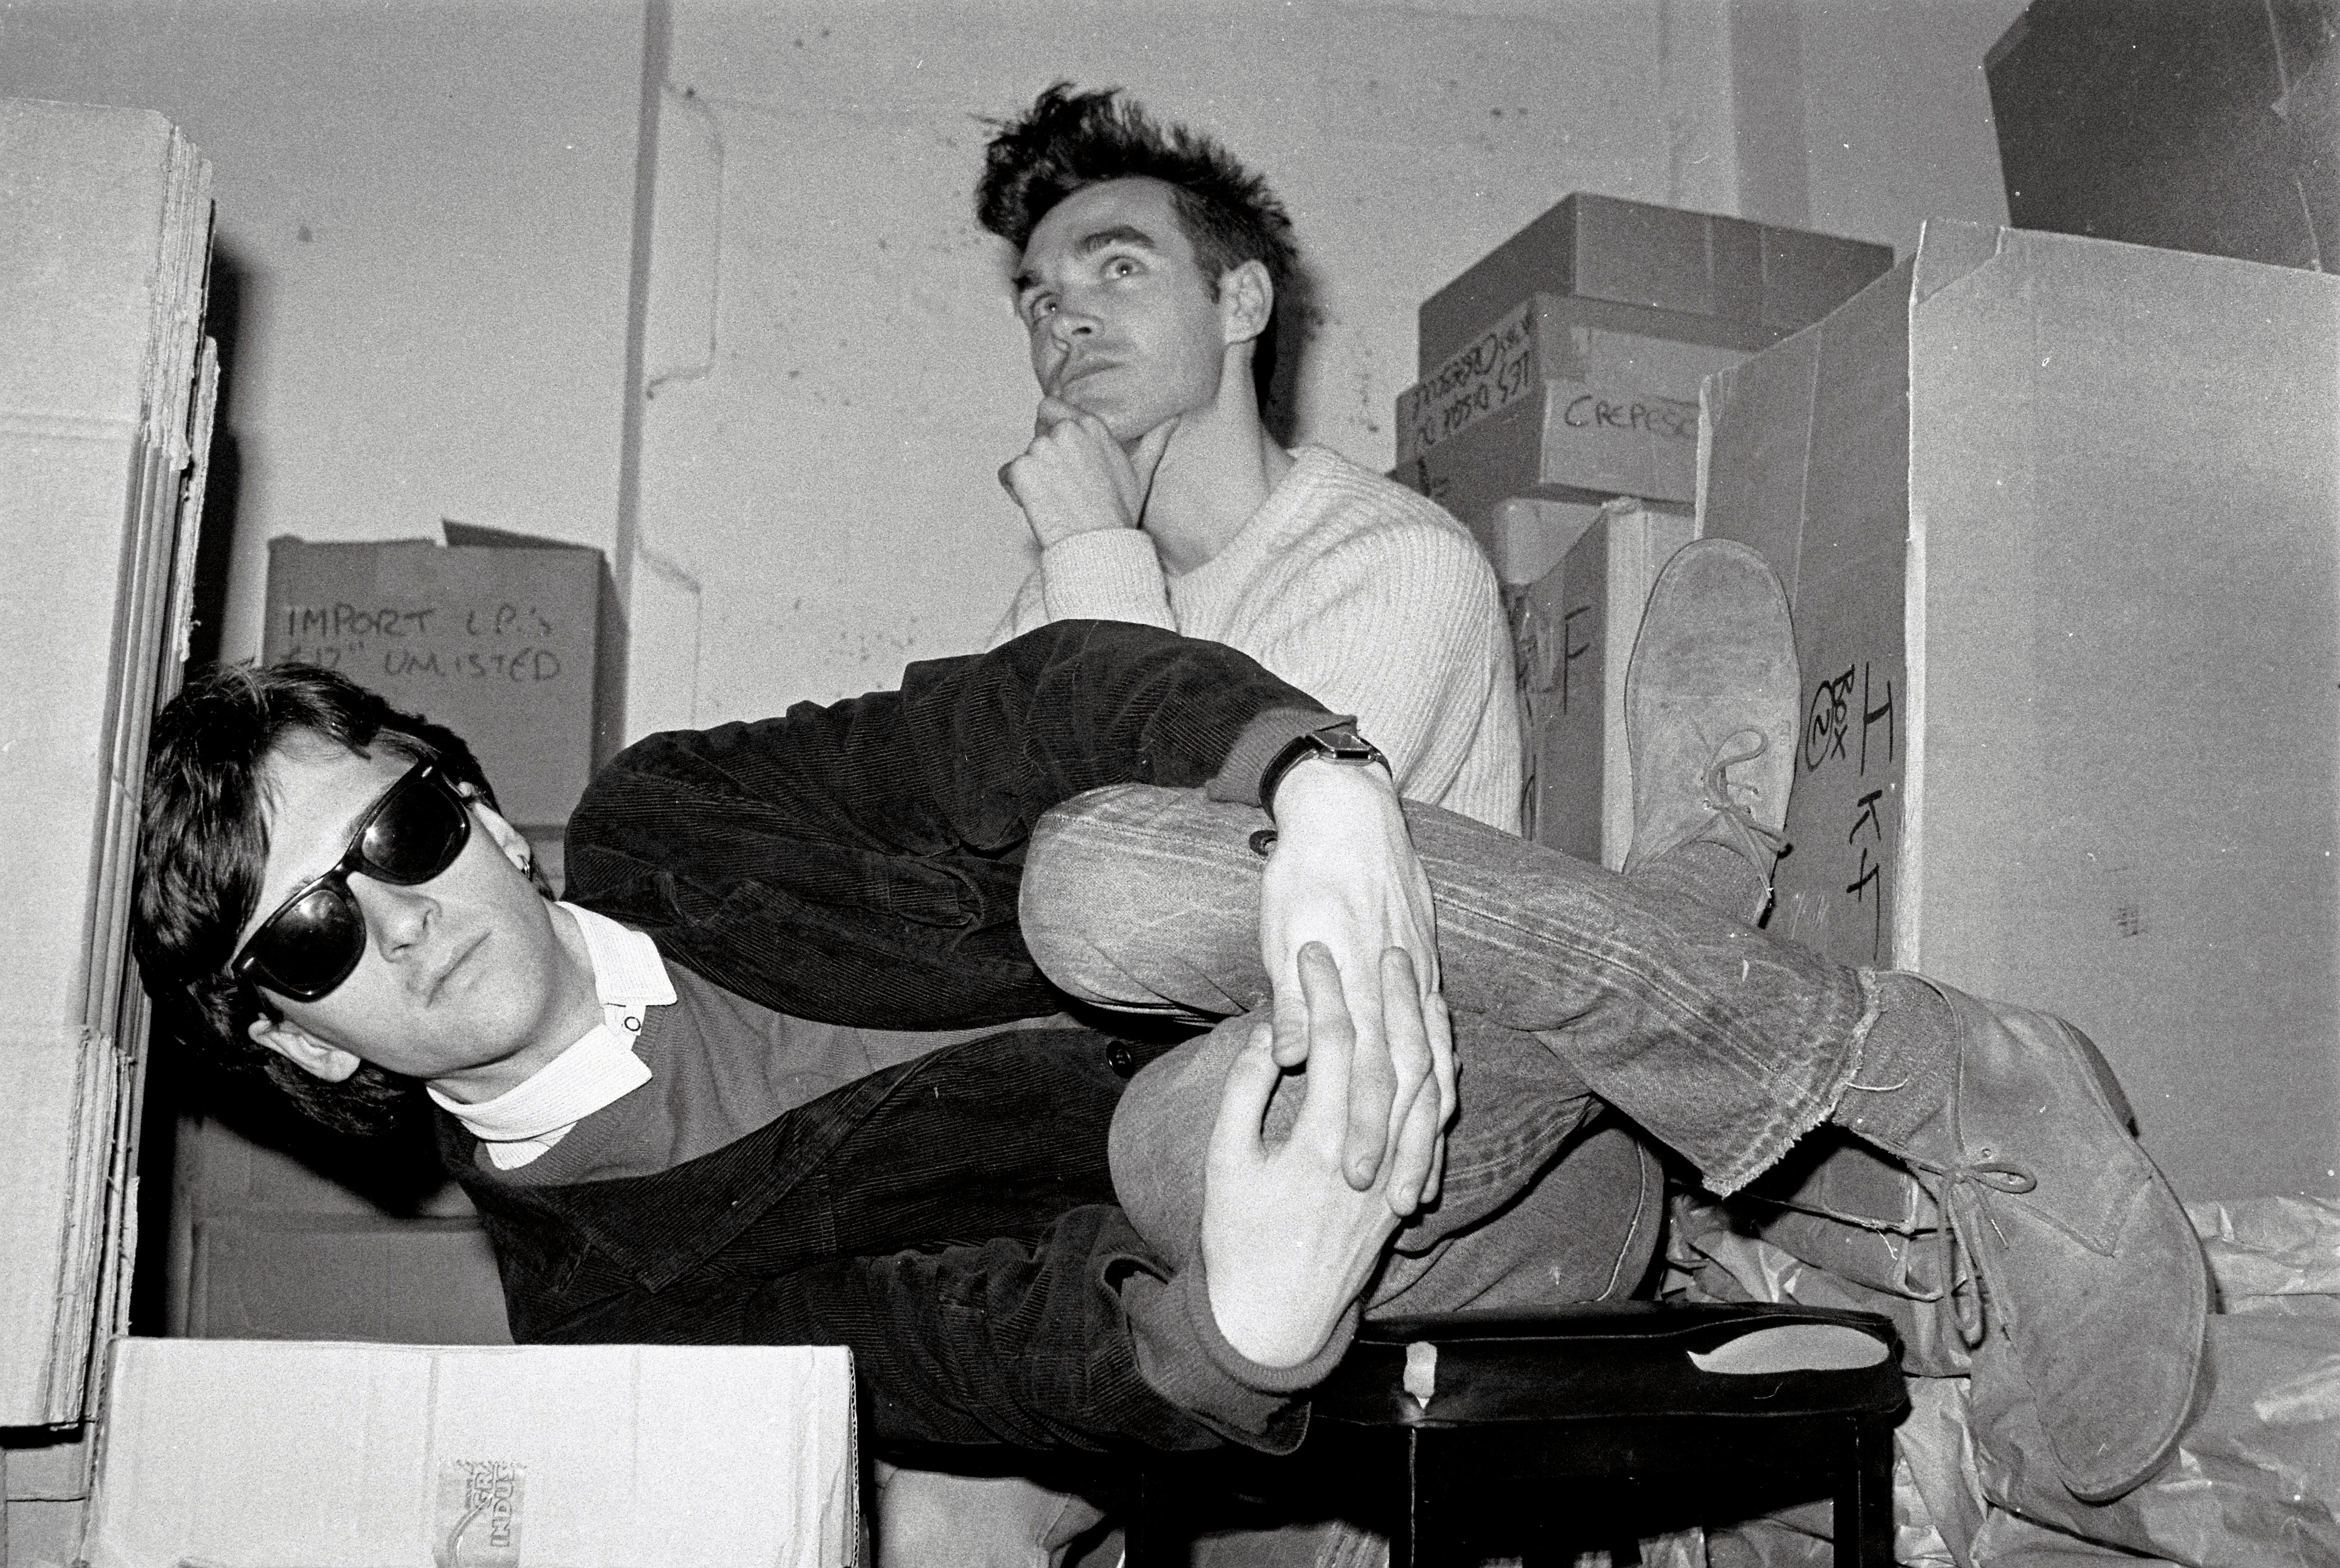 LONDON - 1st JANUARY: Johnny Marr (left) and Morrissey from The Smiths pose together in the store room of Rough Trade records